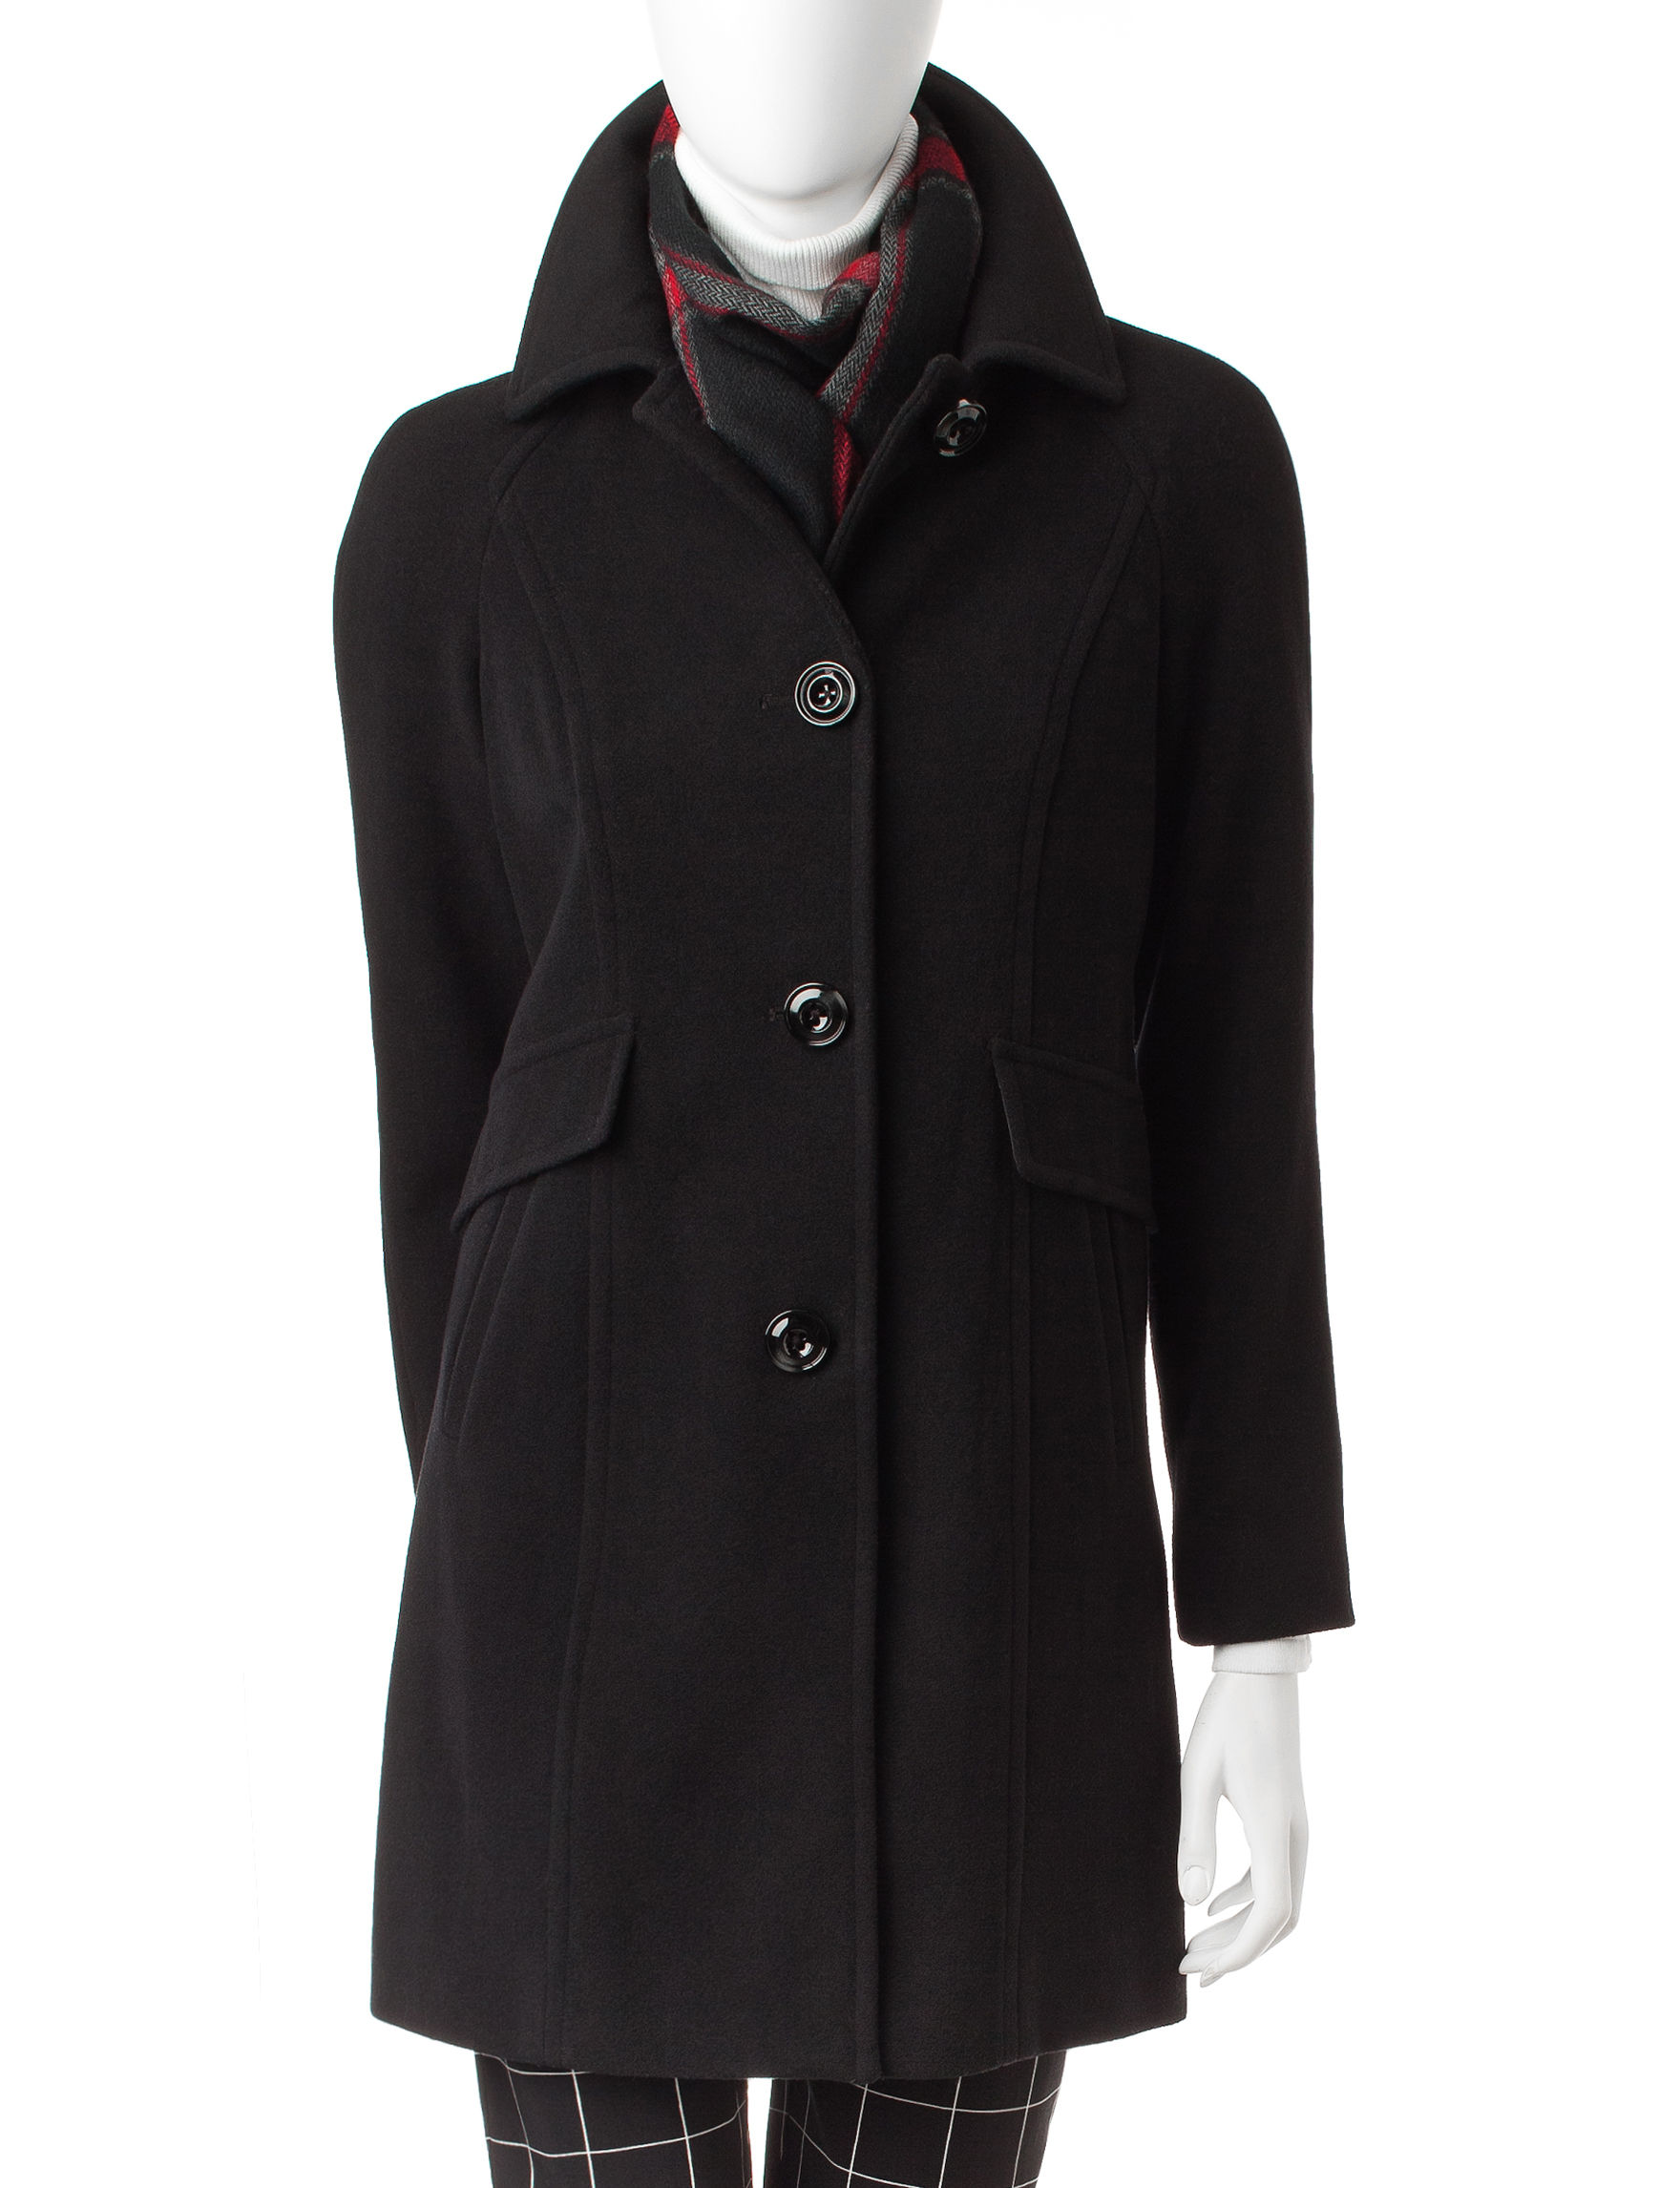 London Fog Black Peacoats & Overcoats